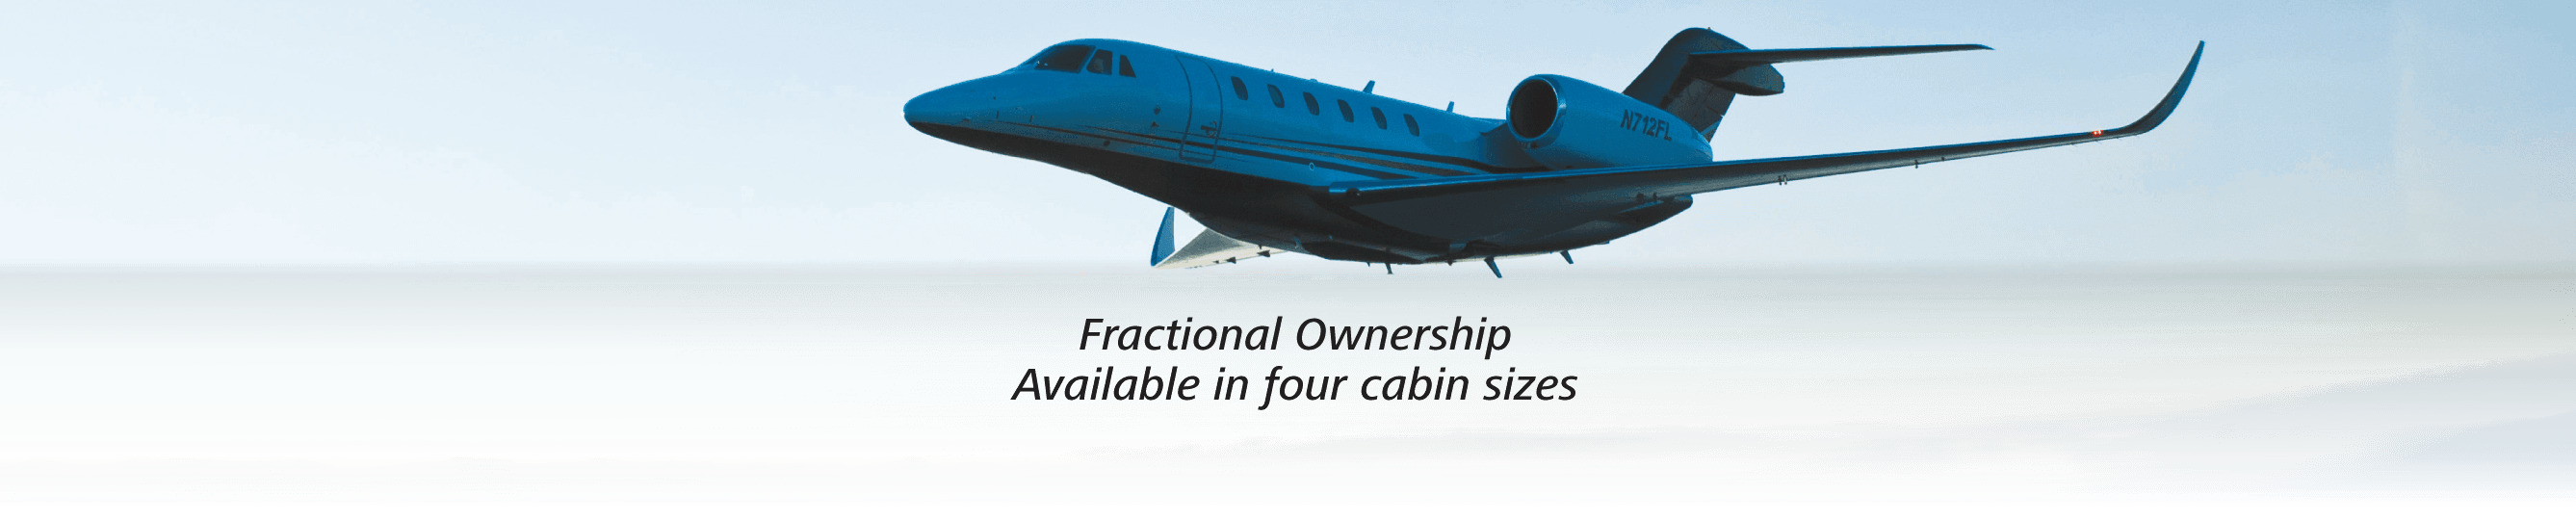 Flight Options Fractional Private Jet Ownership